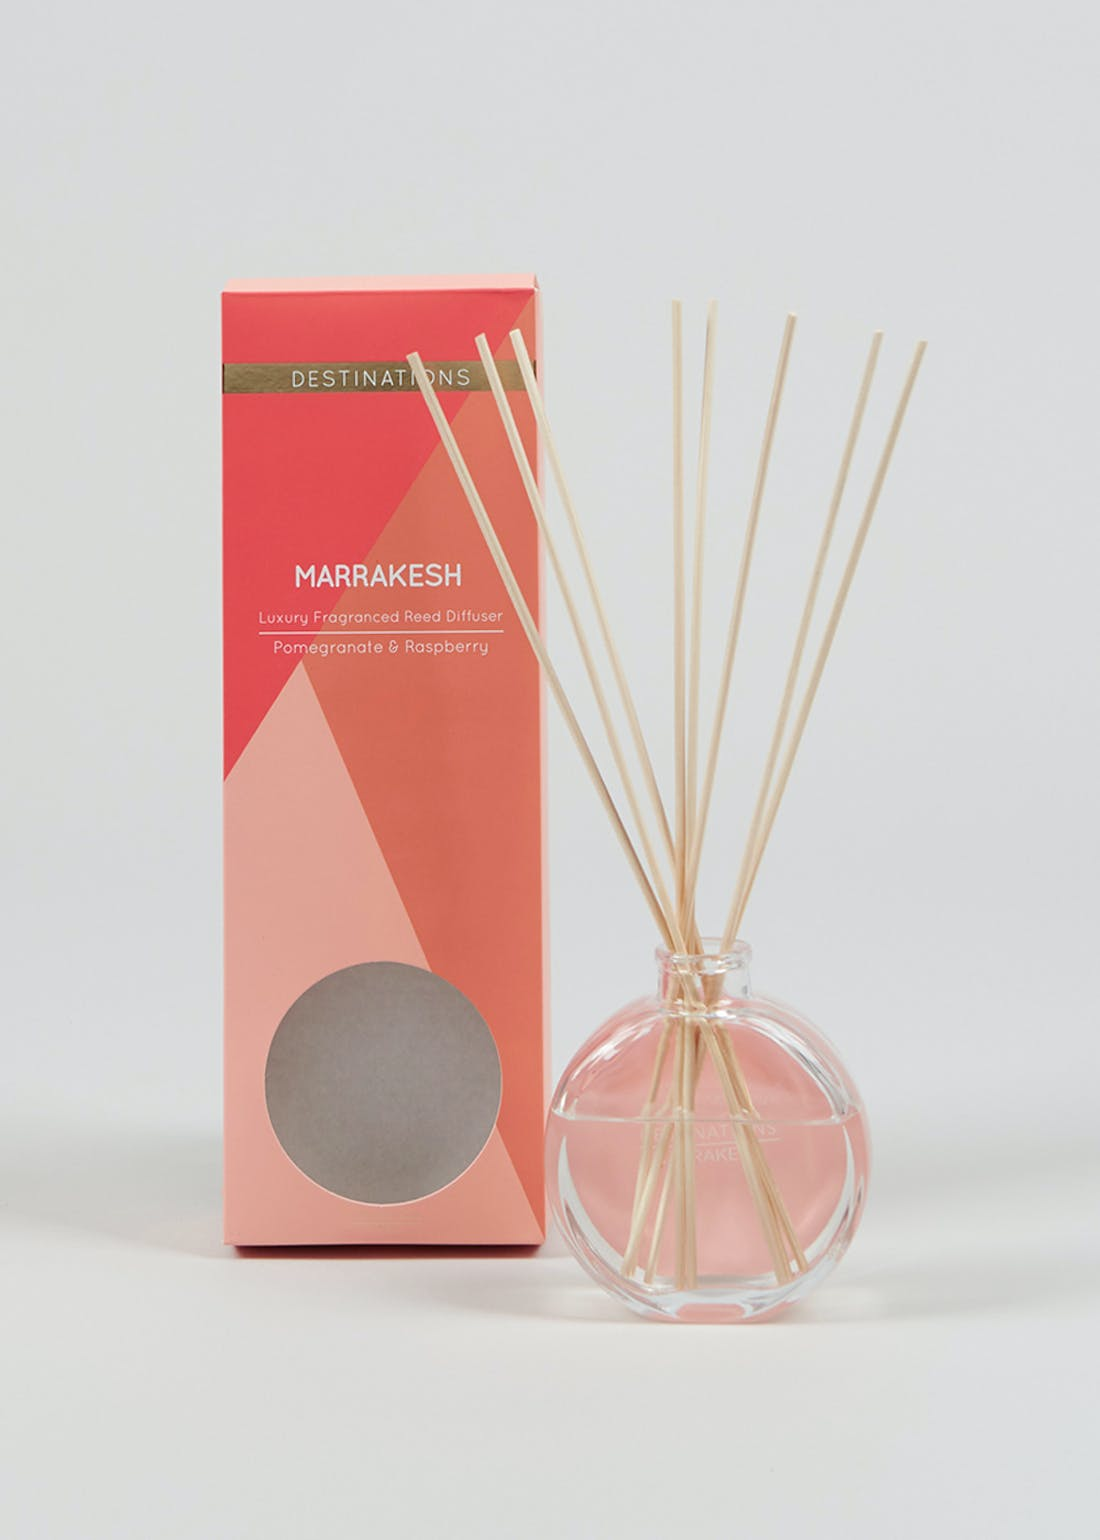 Marrakech Destinations Diffuser (100ml)